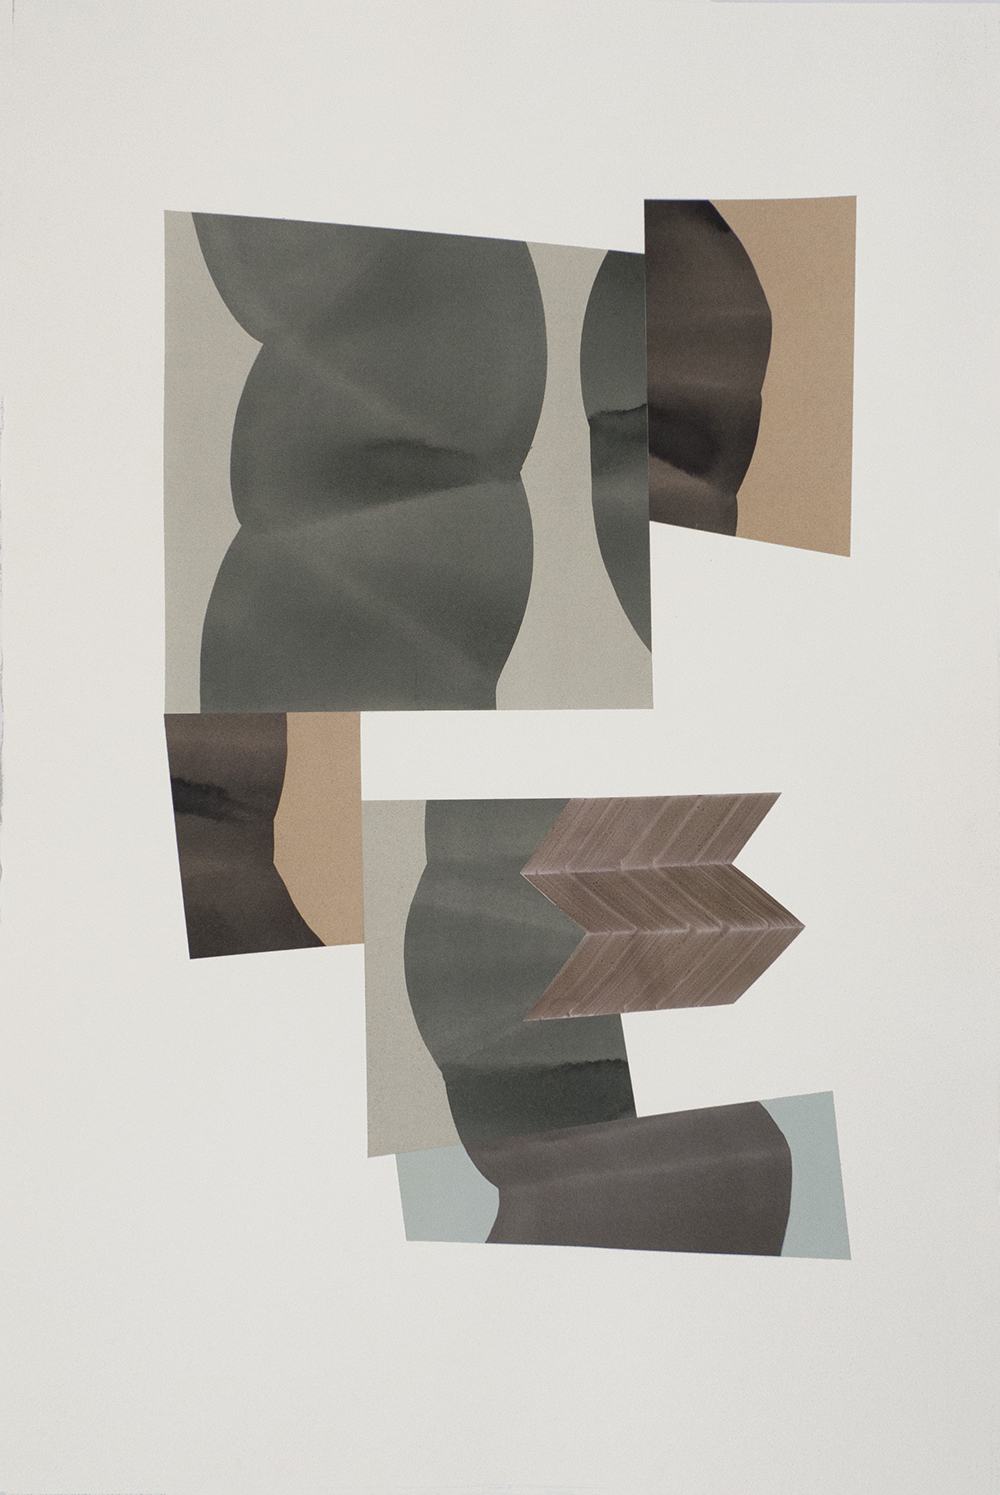 """Simone Rochon, Ombres souples no. 4 , 2017, collage, acrylic ink on Waterford paper,40"""" x 26"""" (102 x 66 cm)."""